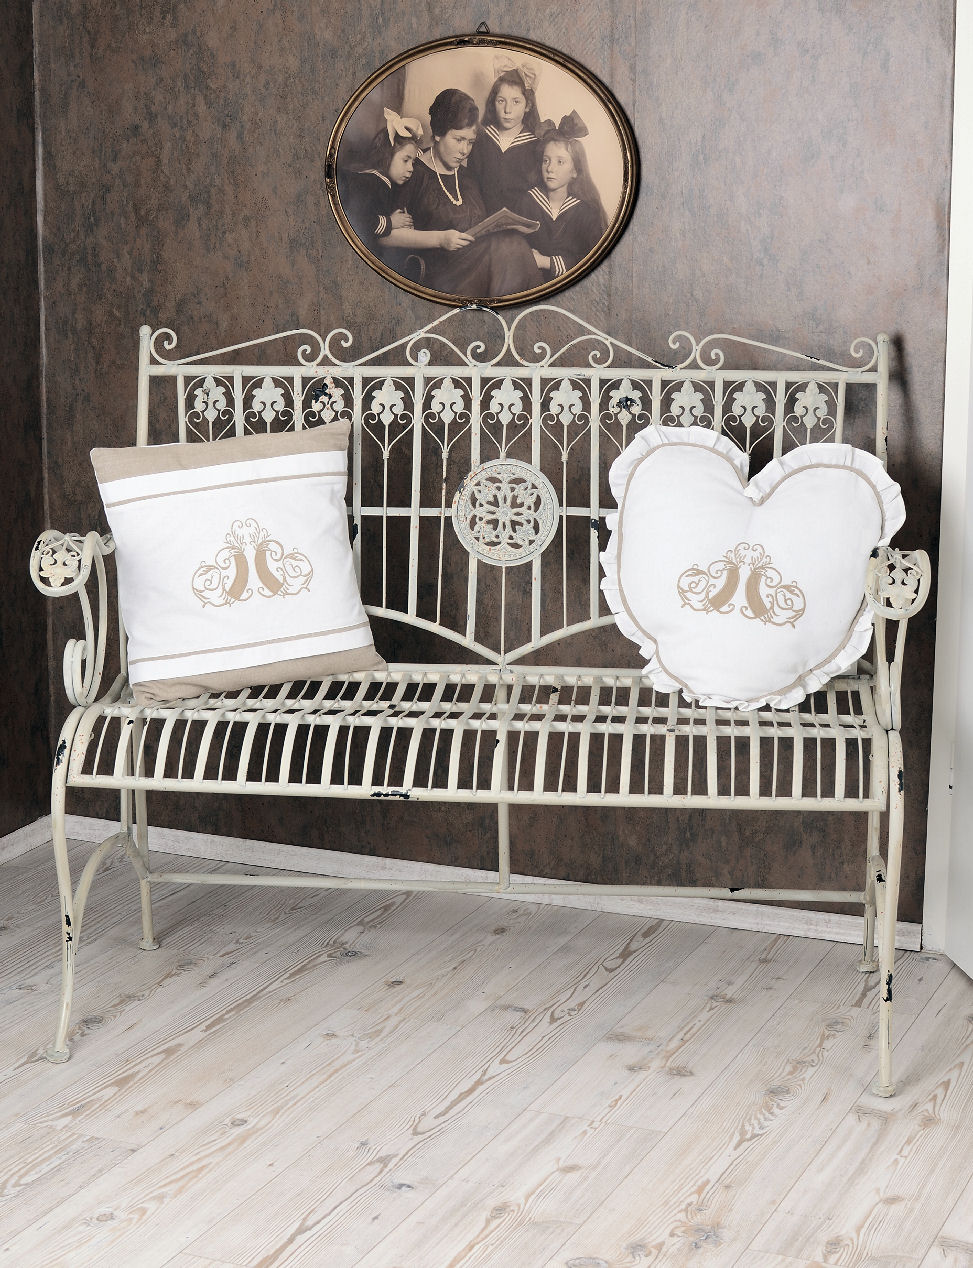 sitzbank shabby bank weiss gartenbank vintage metallbank. Black Bedroom Furniture Sets. Home Design Ideas